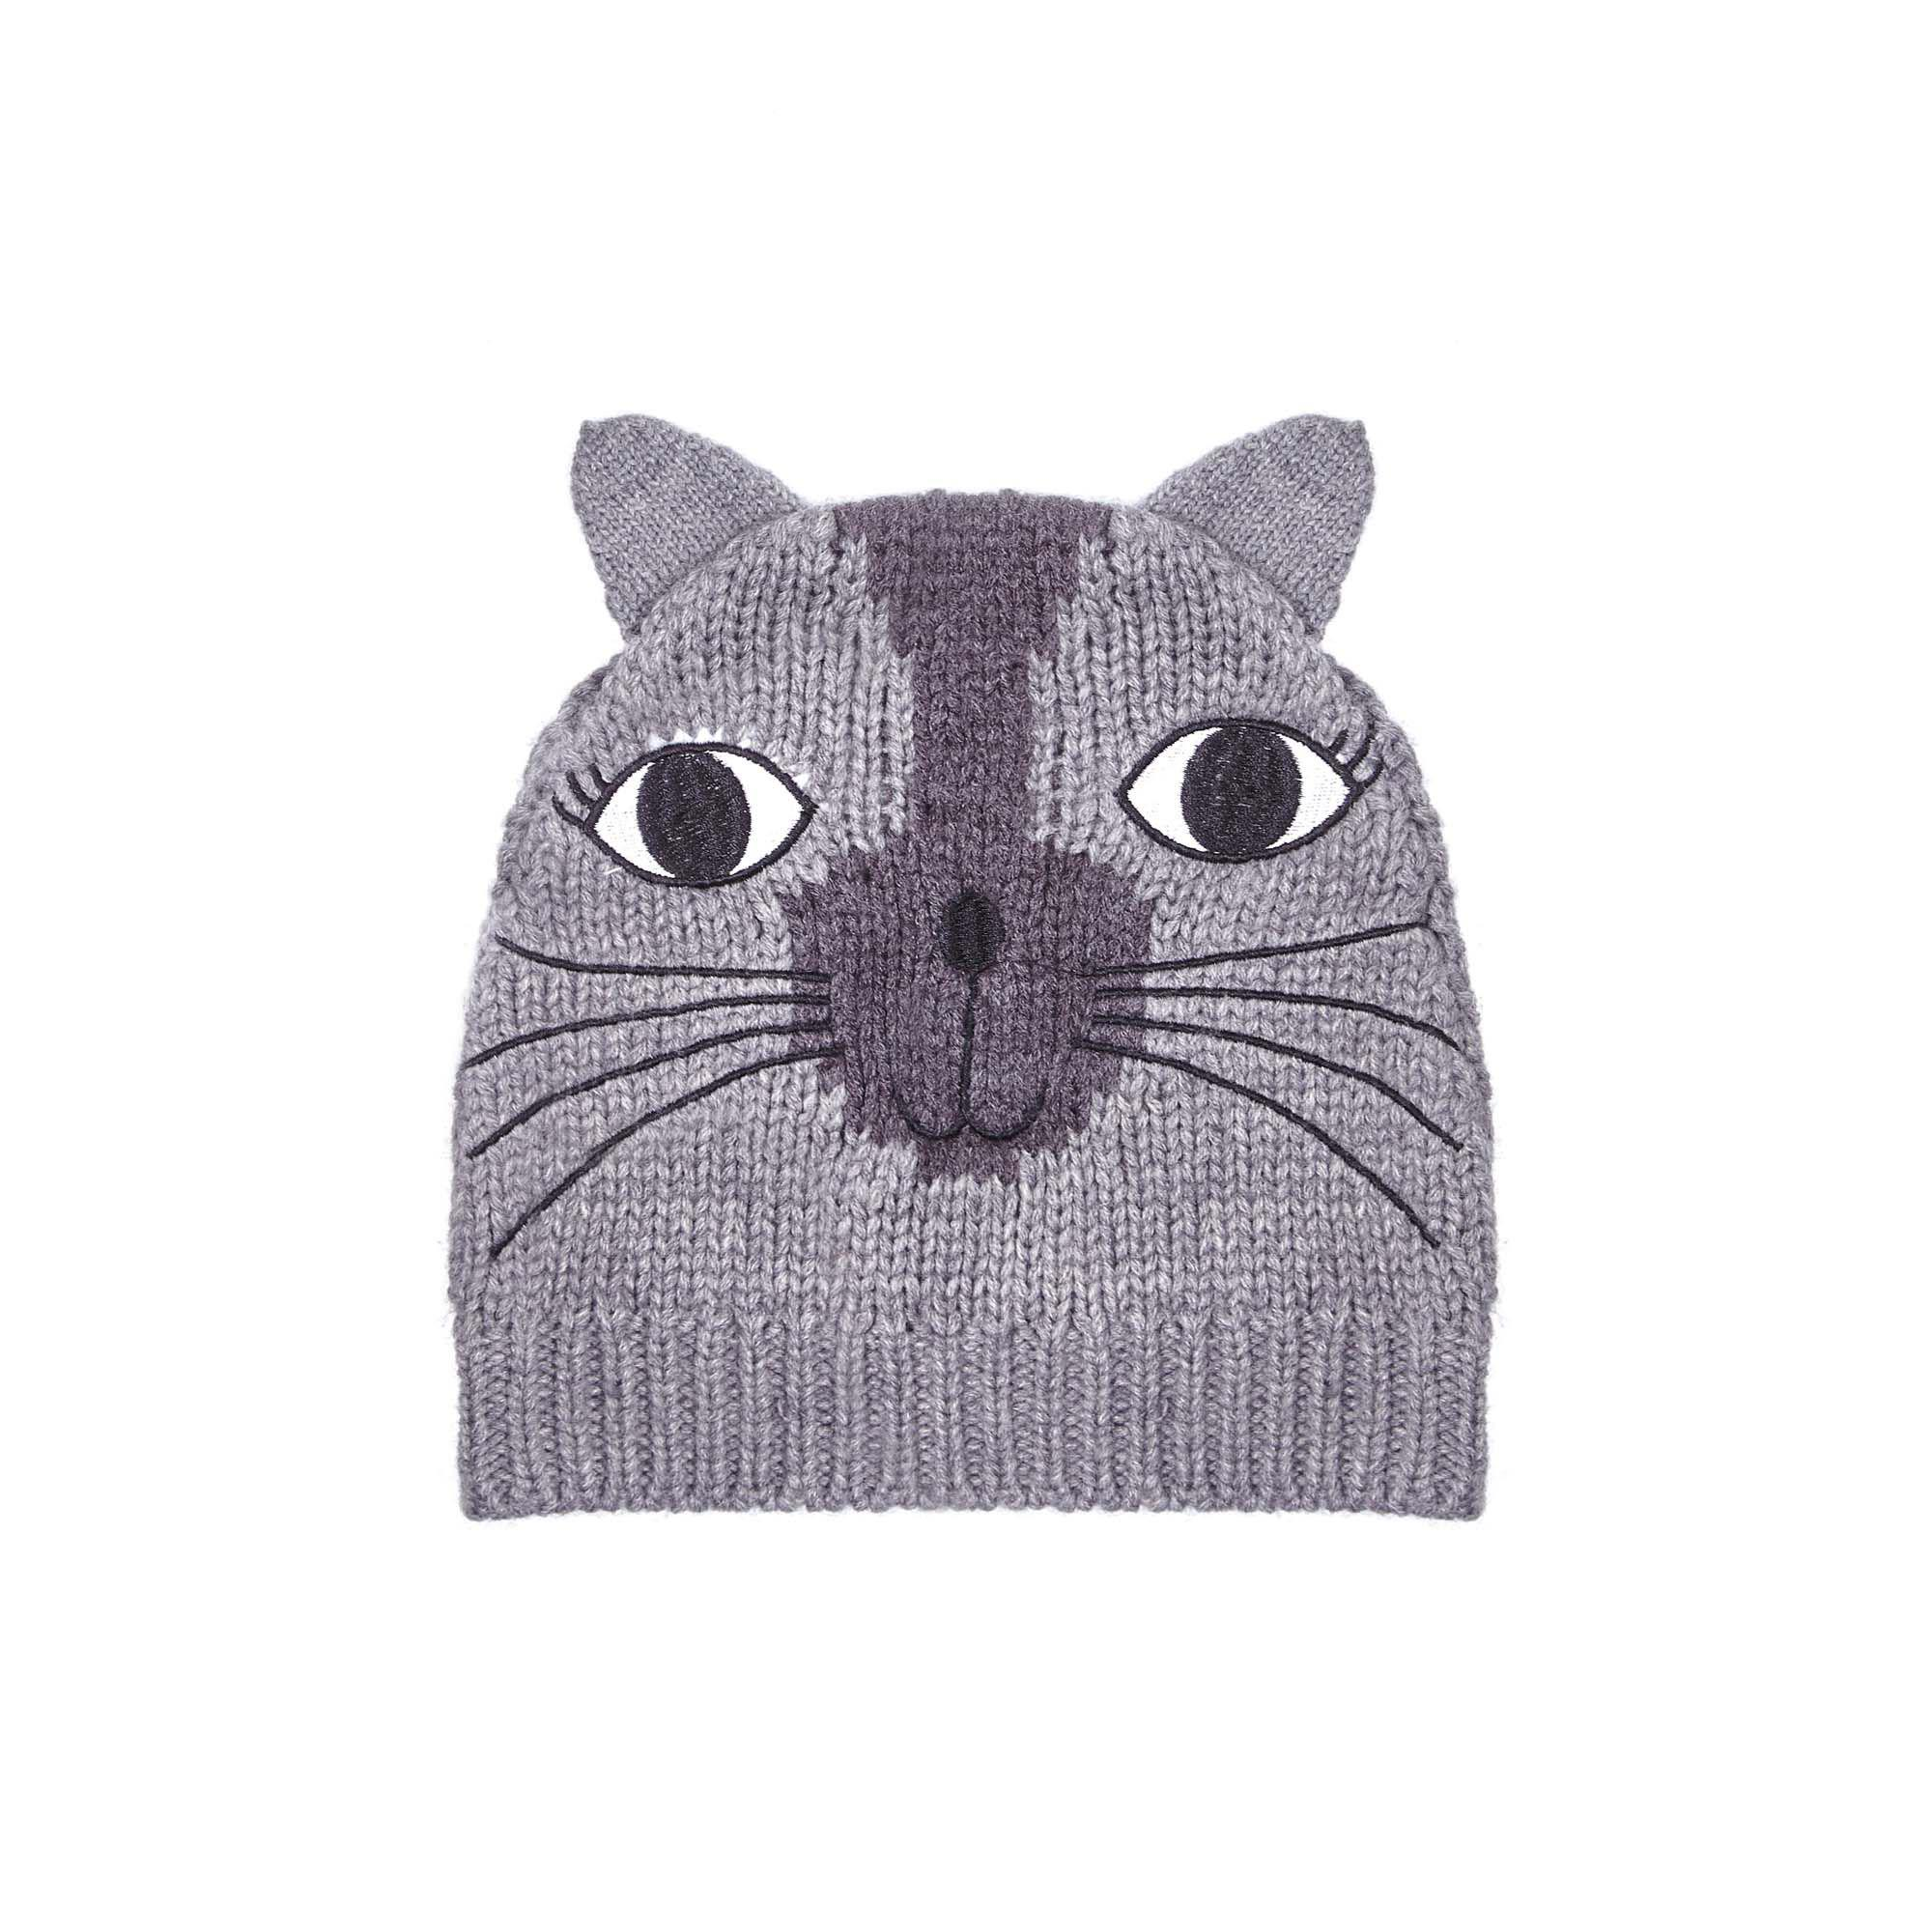 581f7e0456d Yumi  - Gray Grey Knitted Cat Hat With Ears - Lyst. View fullscreen